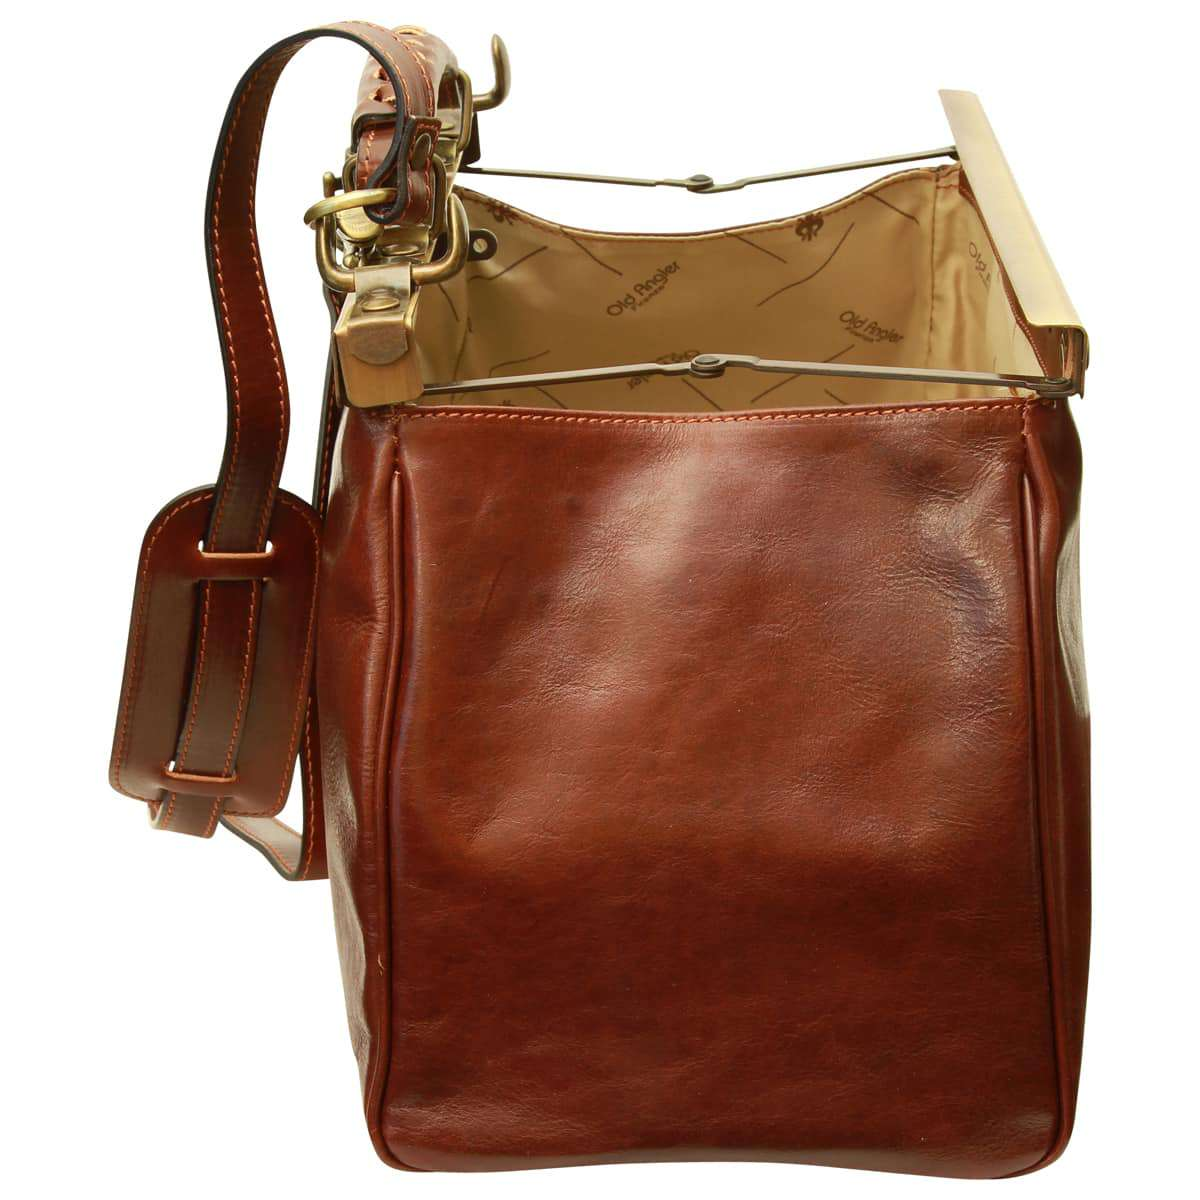 Leather bag - Brown | 084805MA E | Old Angler Firenze